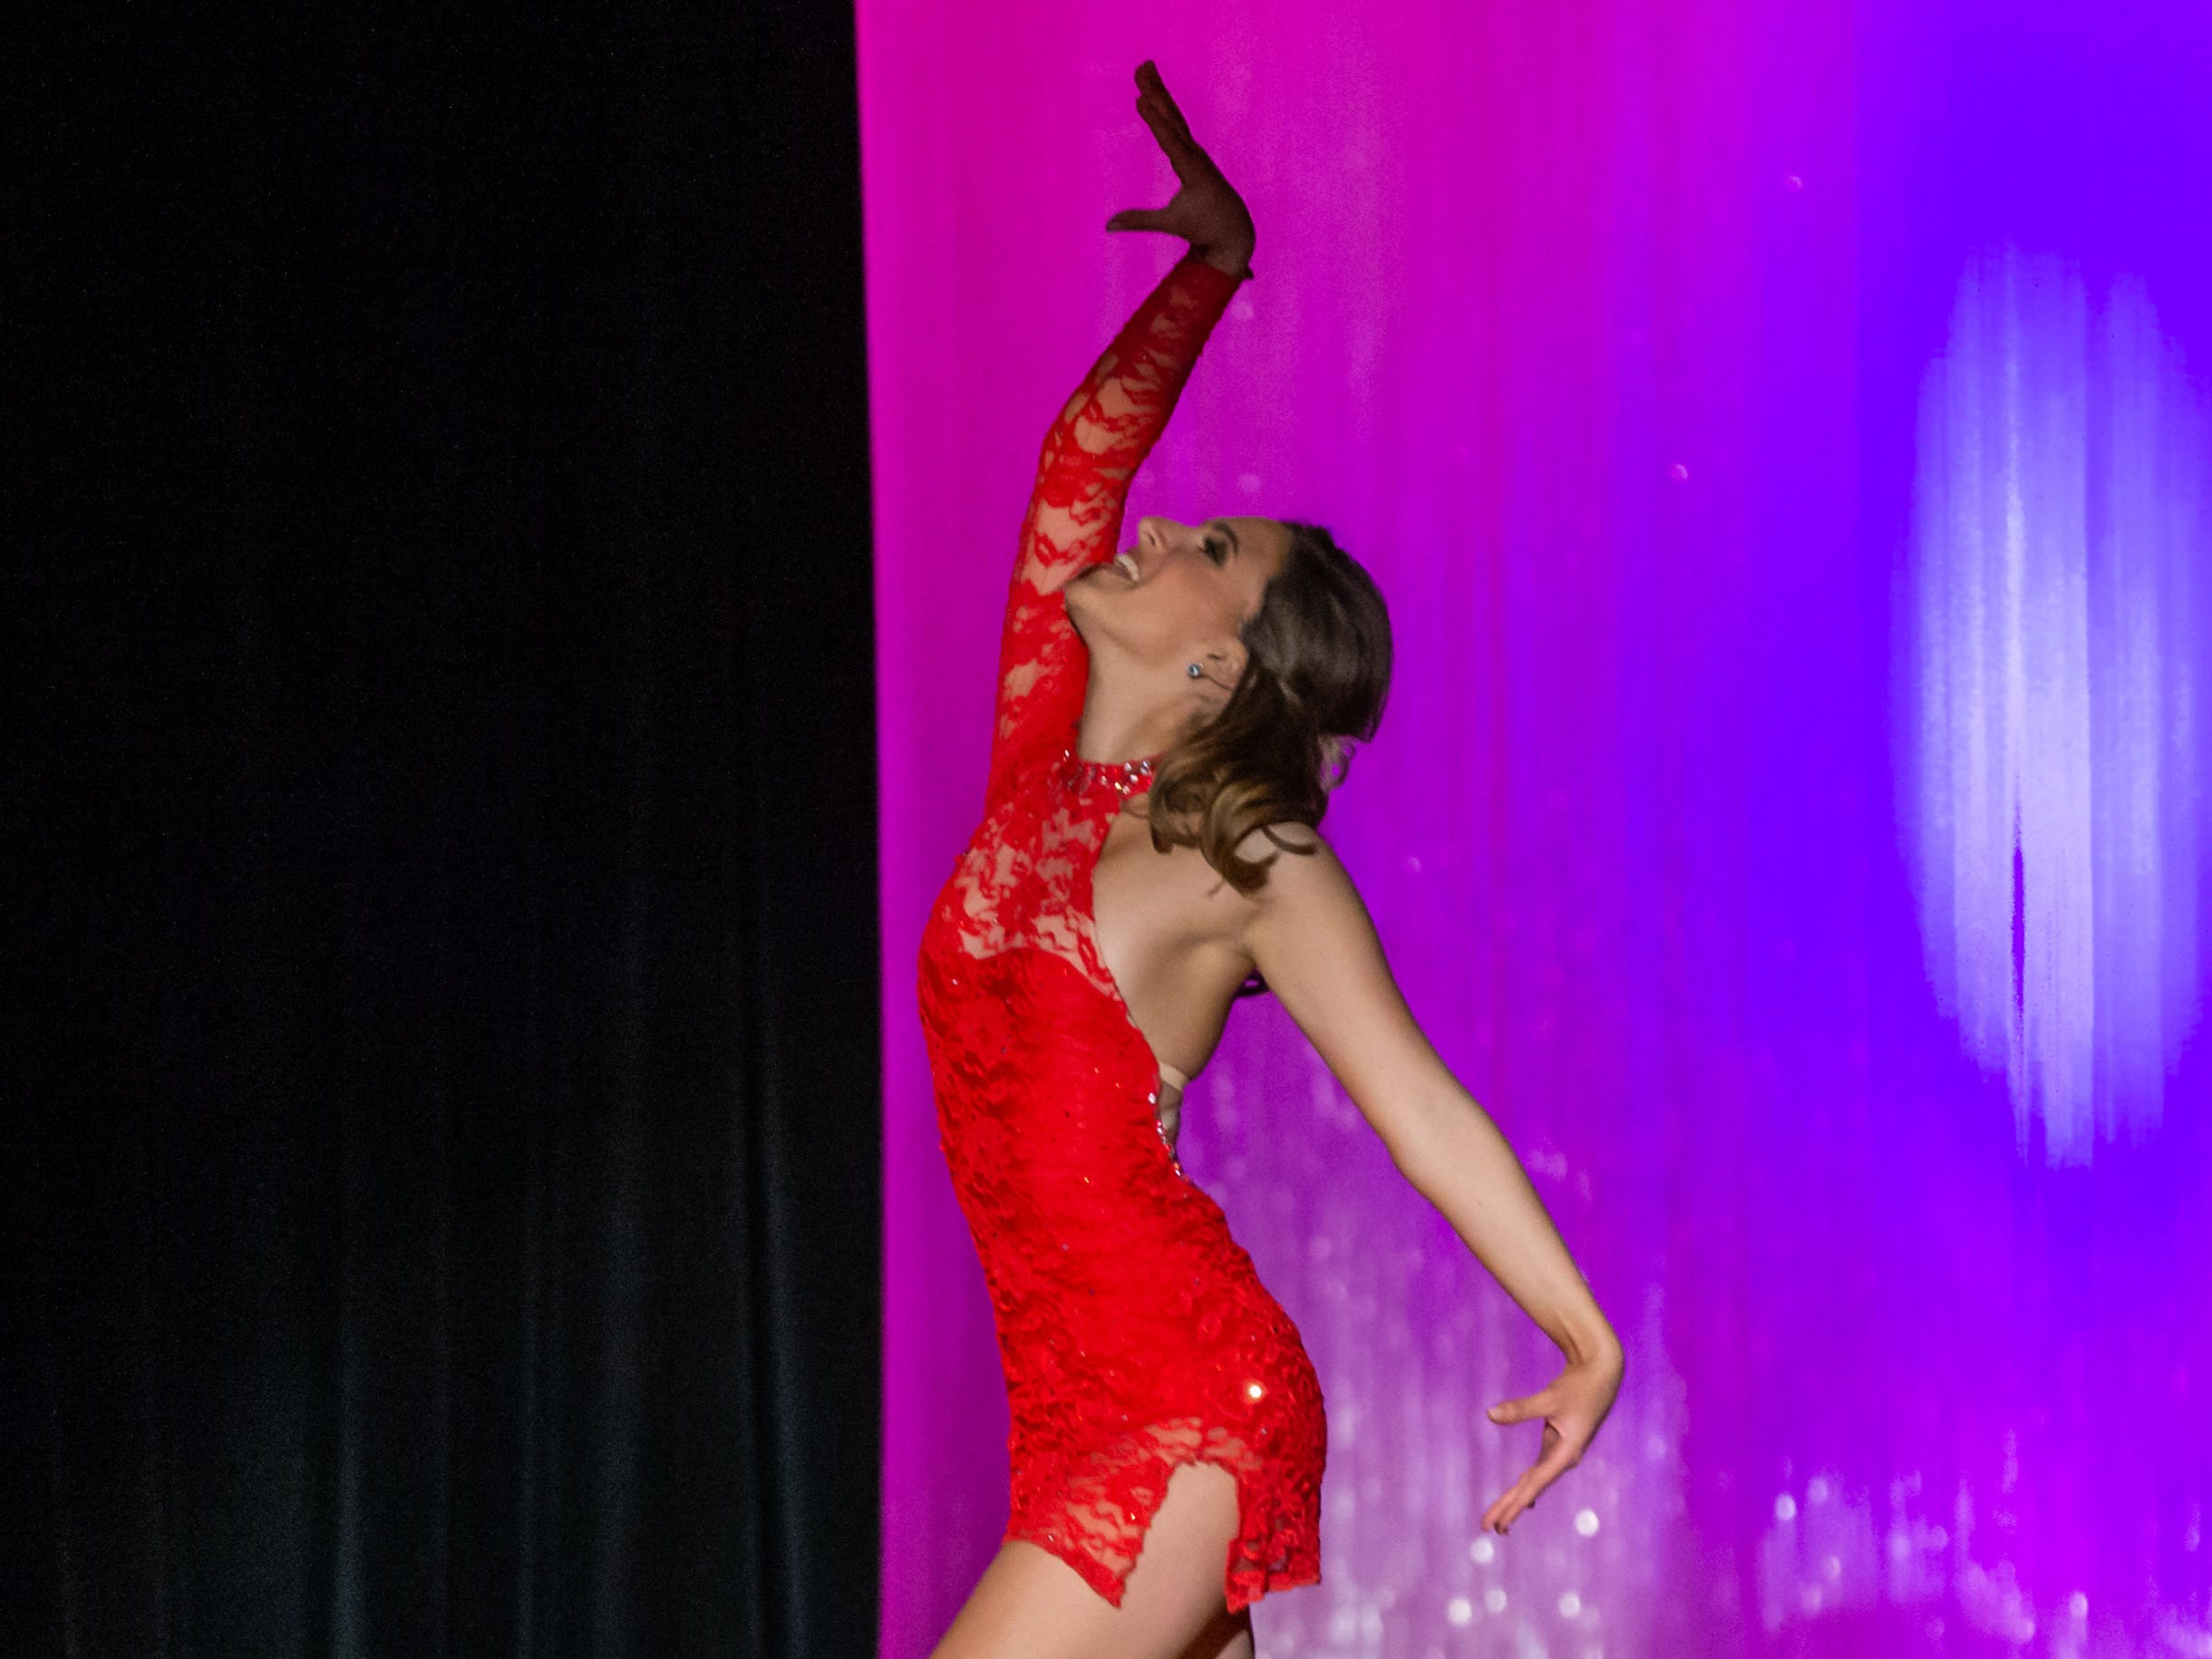 Sarah Bittner, sponsored by PDQ Tooling, competes in the Swimsuit talent of the 55th annual Miss St. Francis Scholarship Competition at St. Thomas More High School on Saturday, Feb. 2, 2019. Sarah won the competition and was crowned Miss St. Francis 2019.